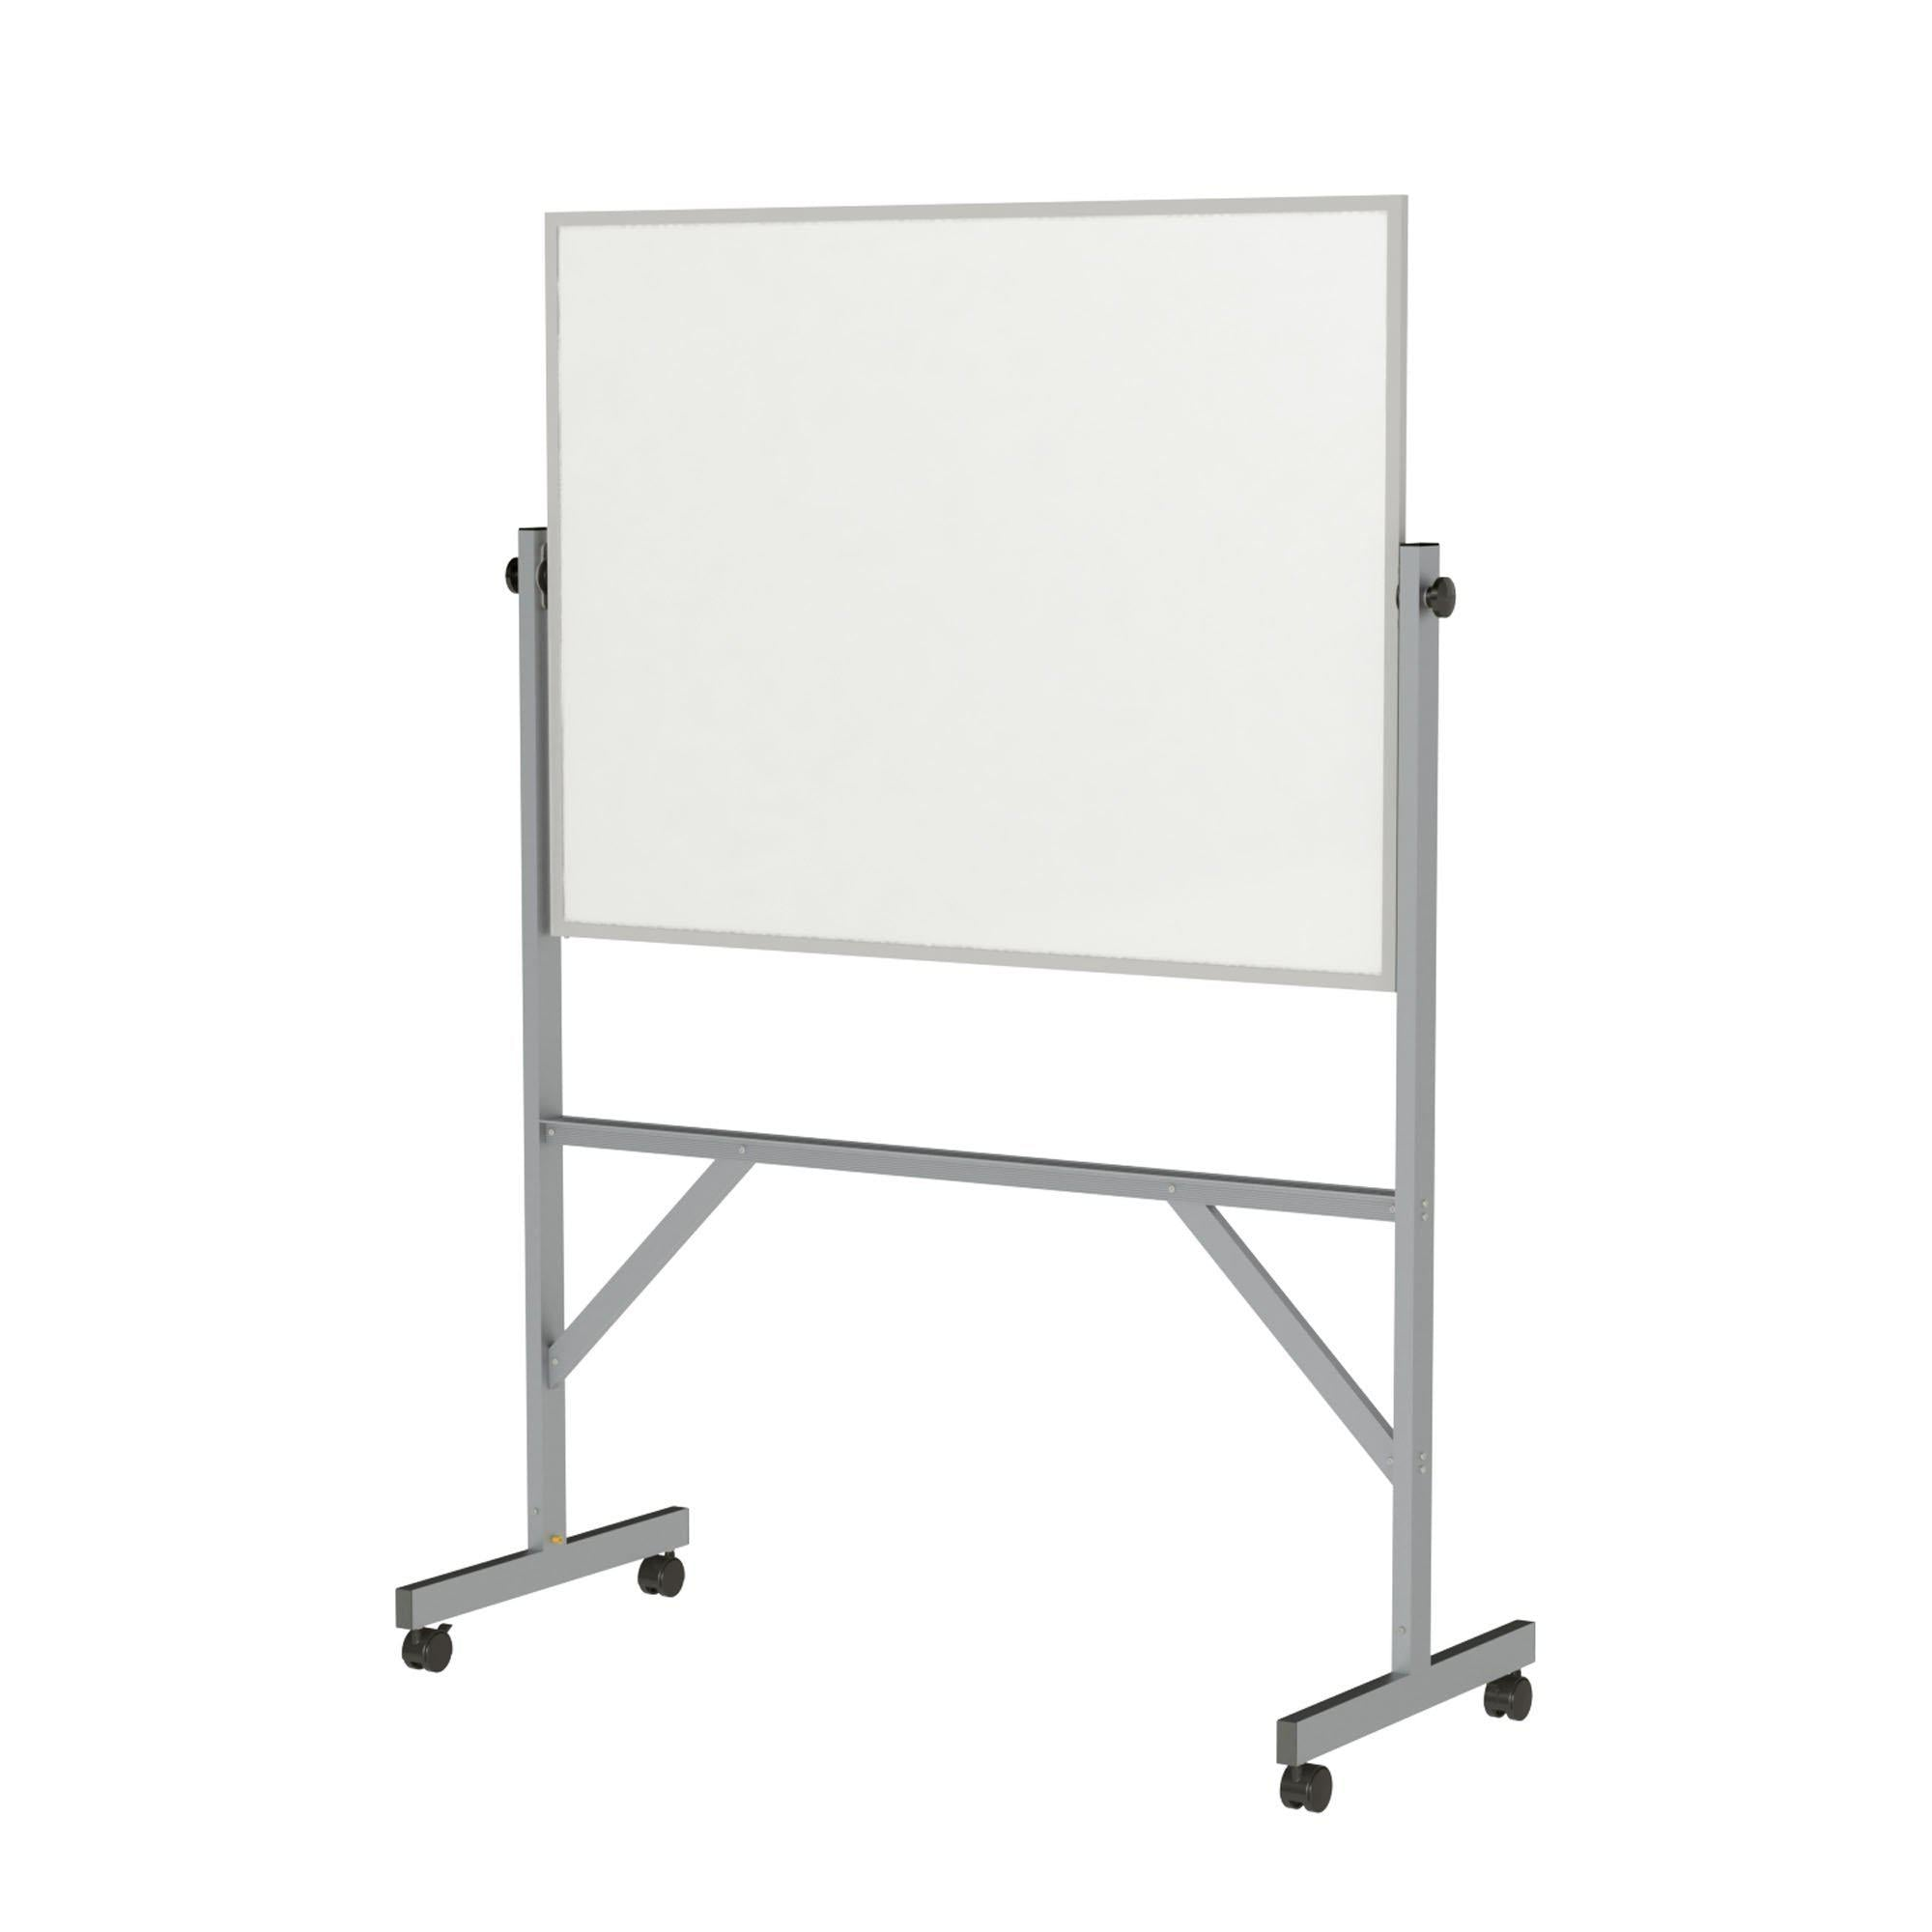 Reversible Magnetic Porcelain Whiteboard with Aluminum Frame-Boards-3'H x 4'W-